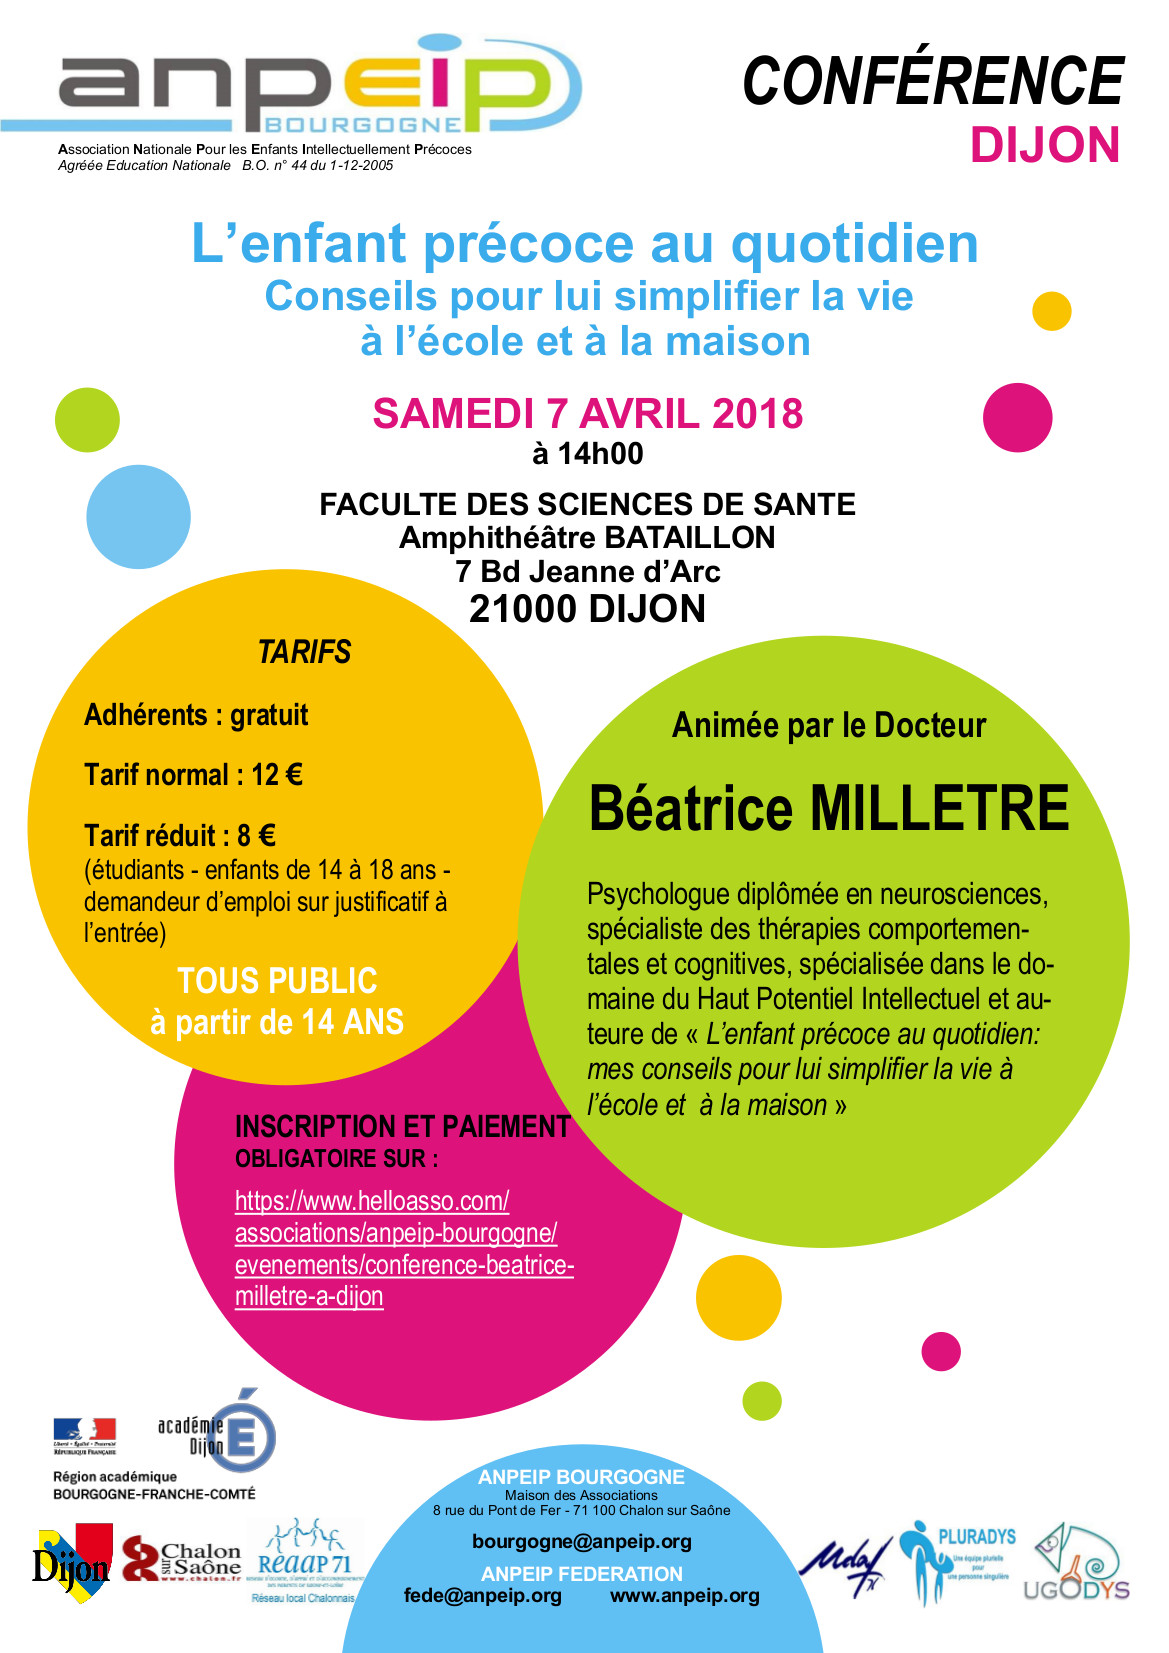 affiche anpeip bourgogne conference 07 04 2018